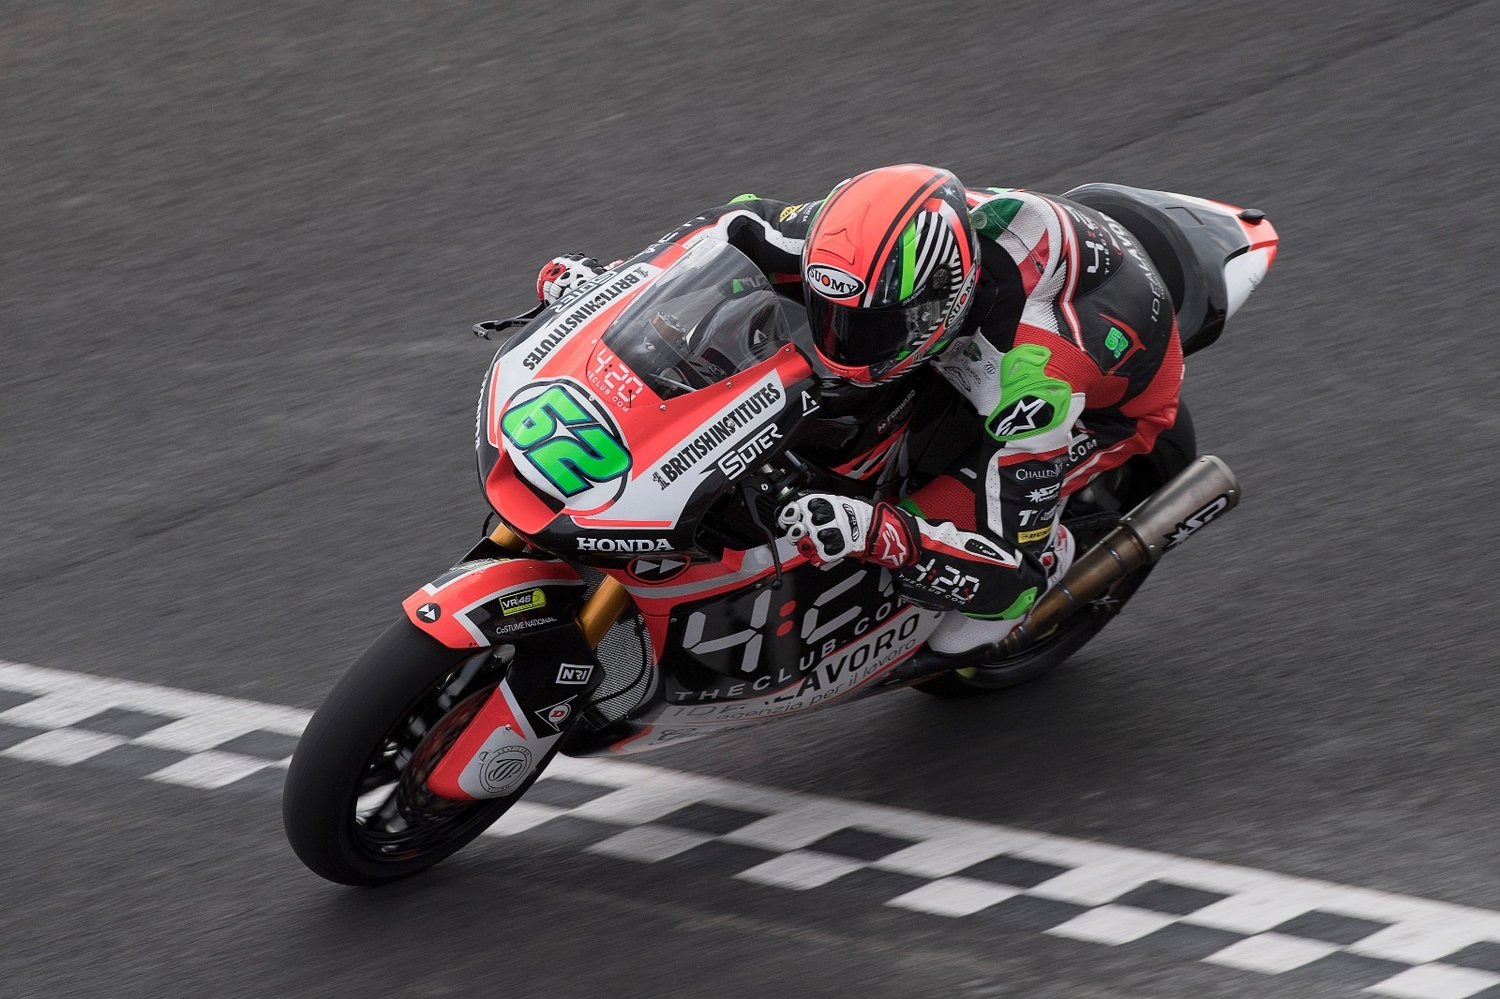 Positive beginning in Argentina for the Forward Racing Team